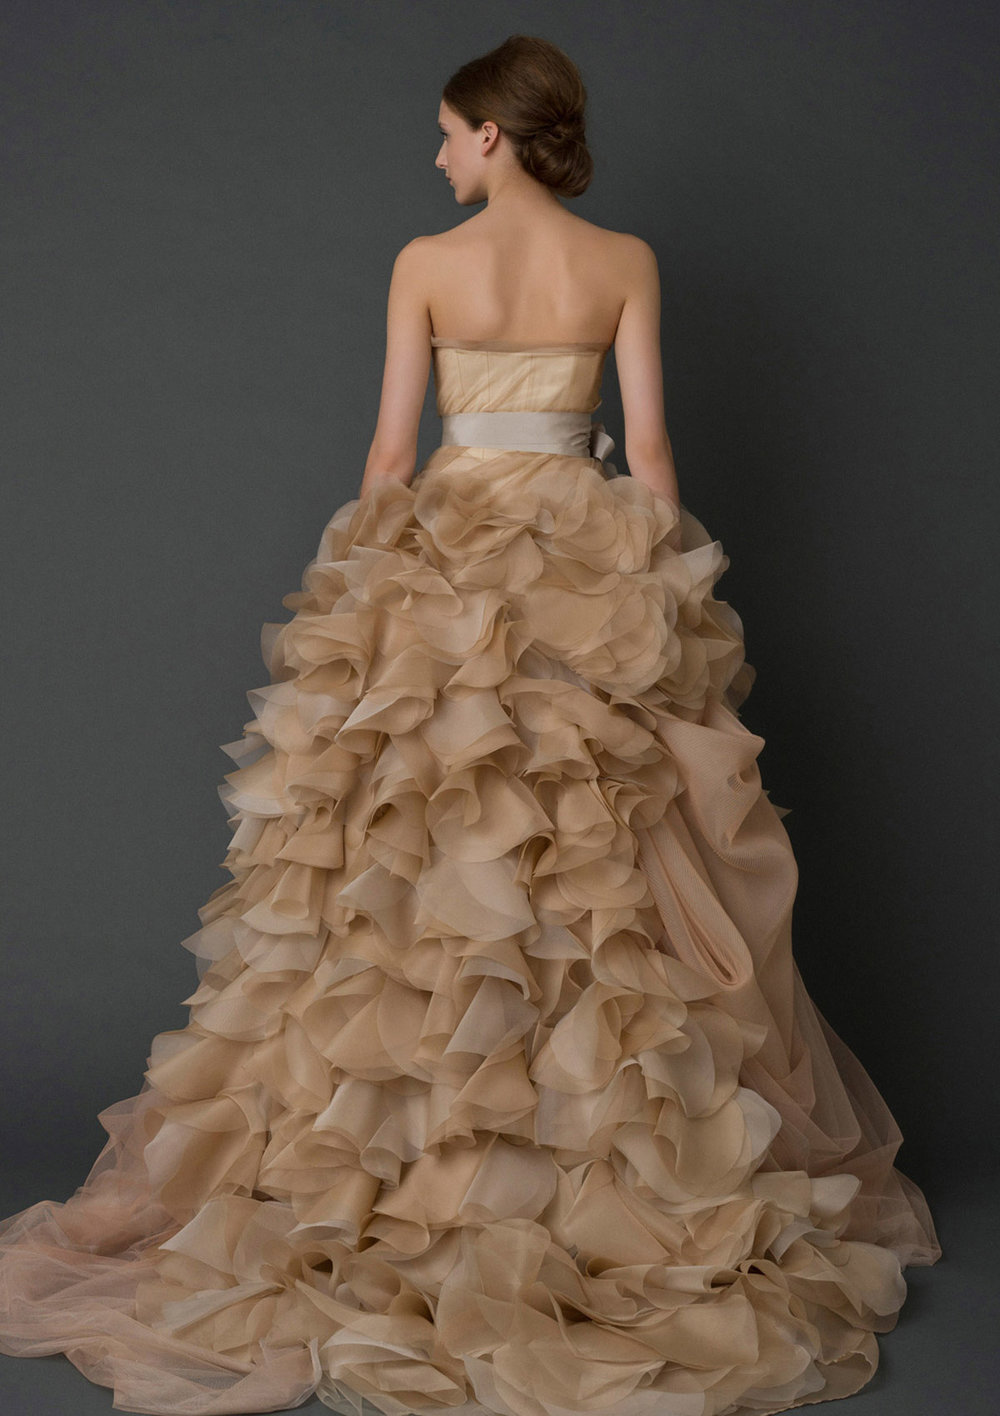 Iconic Style    Gown Name: Hayley    Description: A strapless soft ball gown with draped corset bodice and asymmetrically swept floating organza petal skirt with pleated tulle. Available in ivory and white, shown in nude and sand.